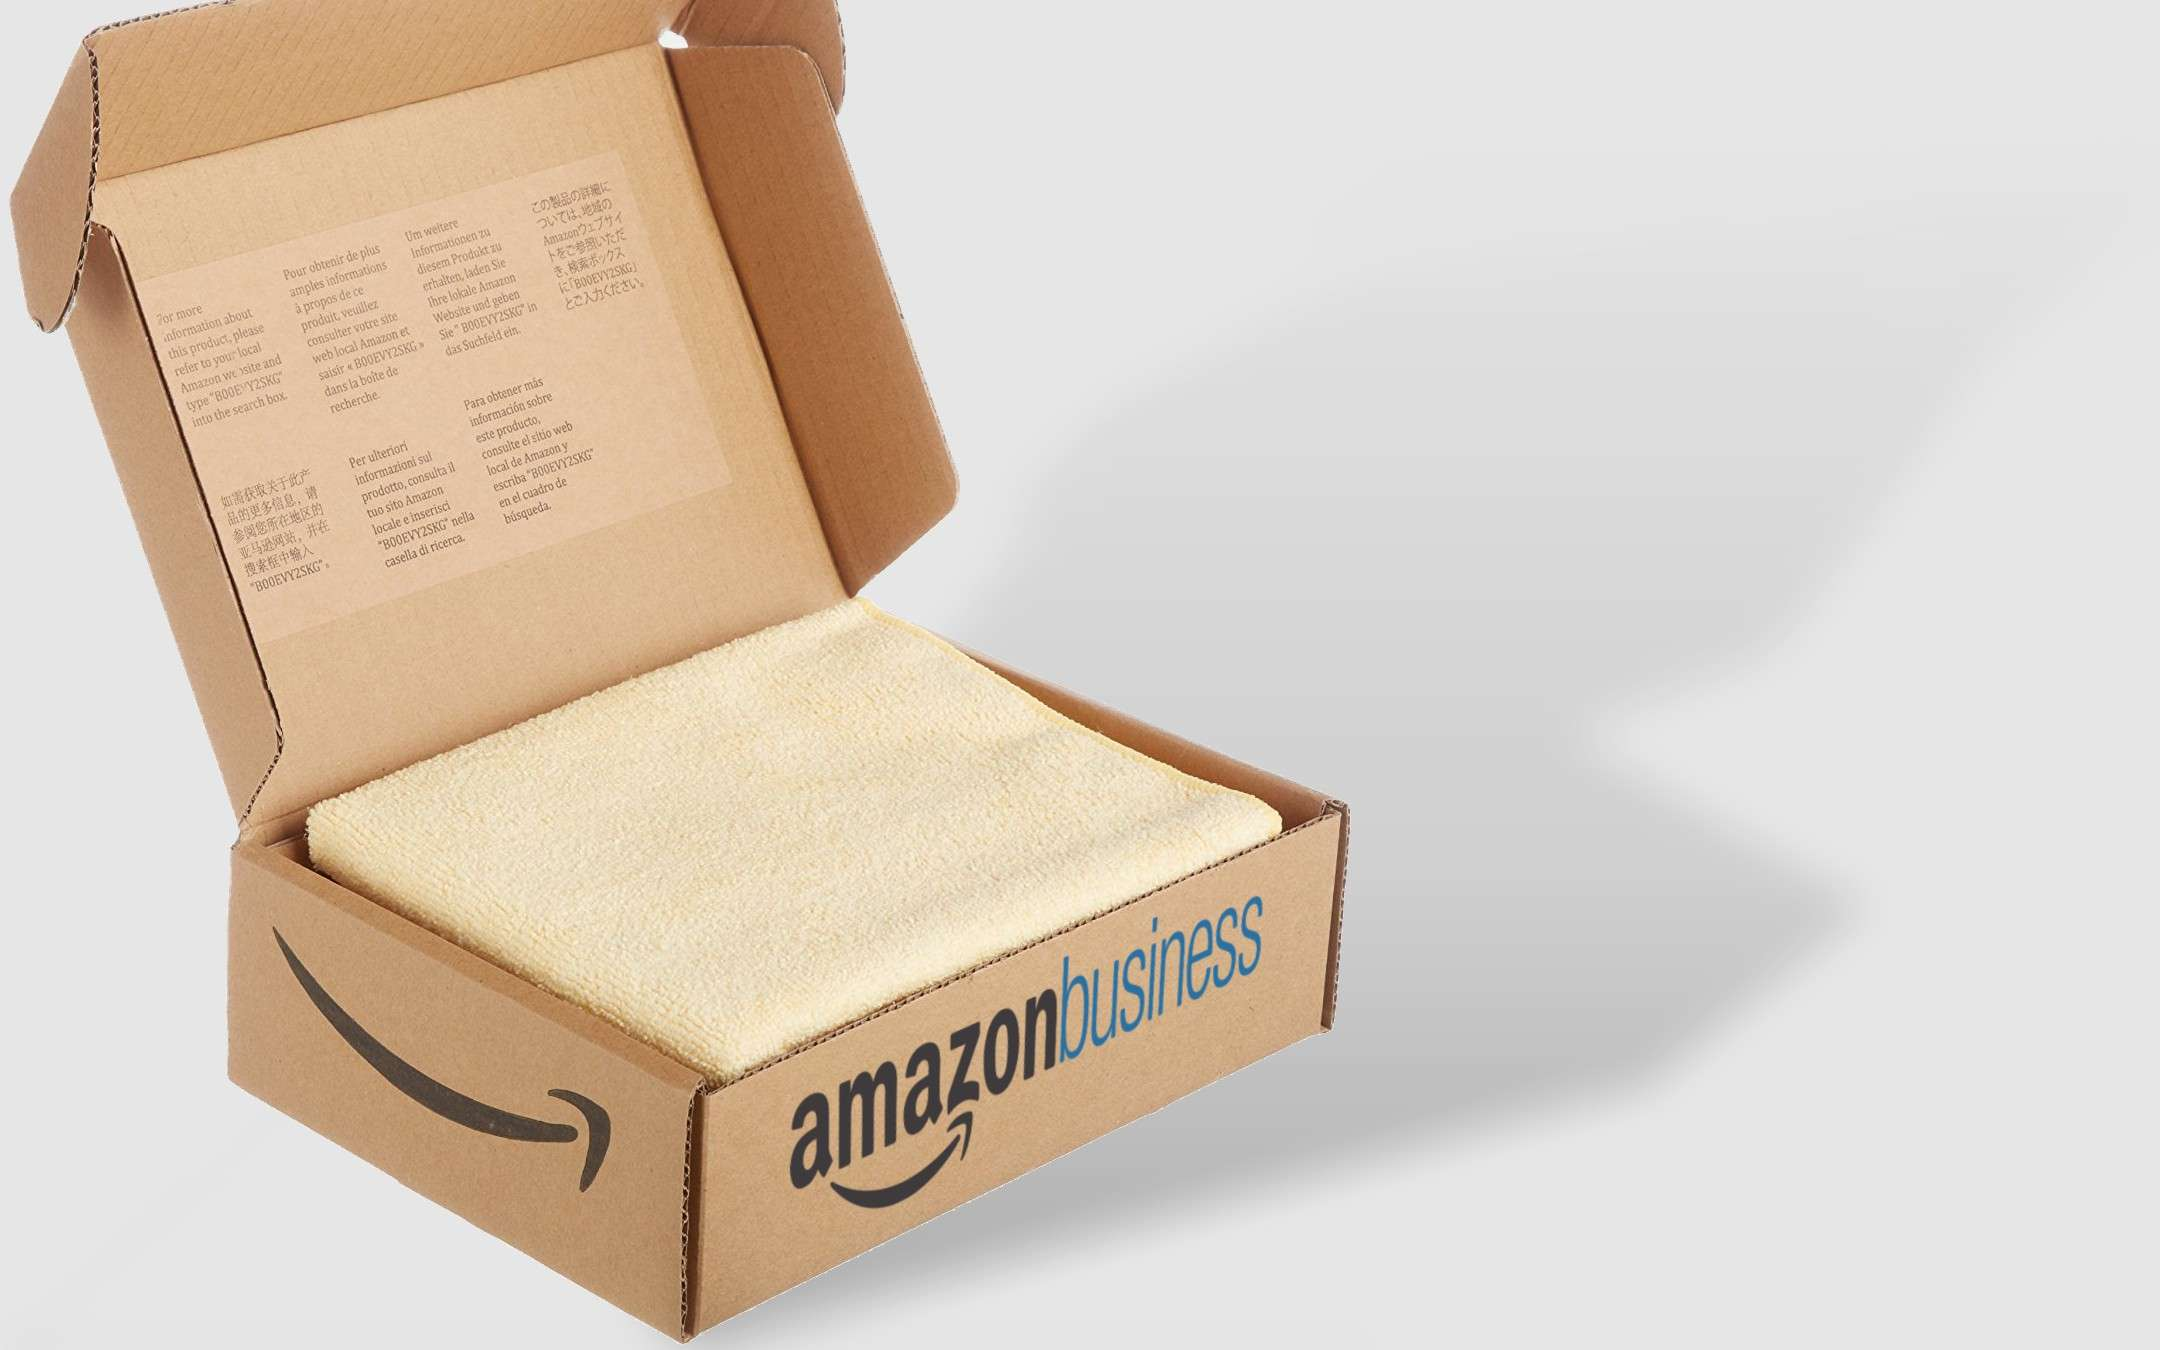 Amazon Business Black Friday: what you bought